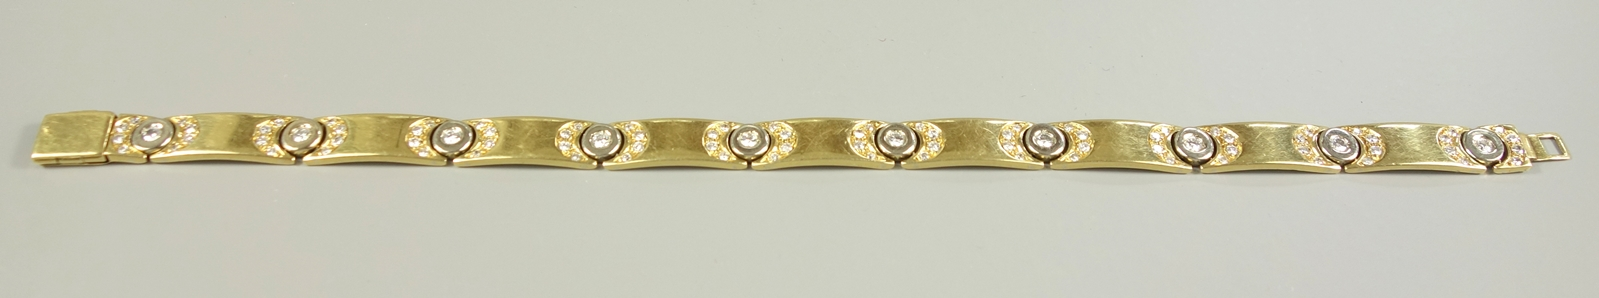 "Brillant-Armband, Hersteller ""Mabri"", 750er Gold, Gew.26,08g, total ca.1,30ct, 10 Brillanten á ca."